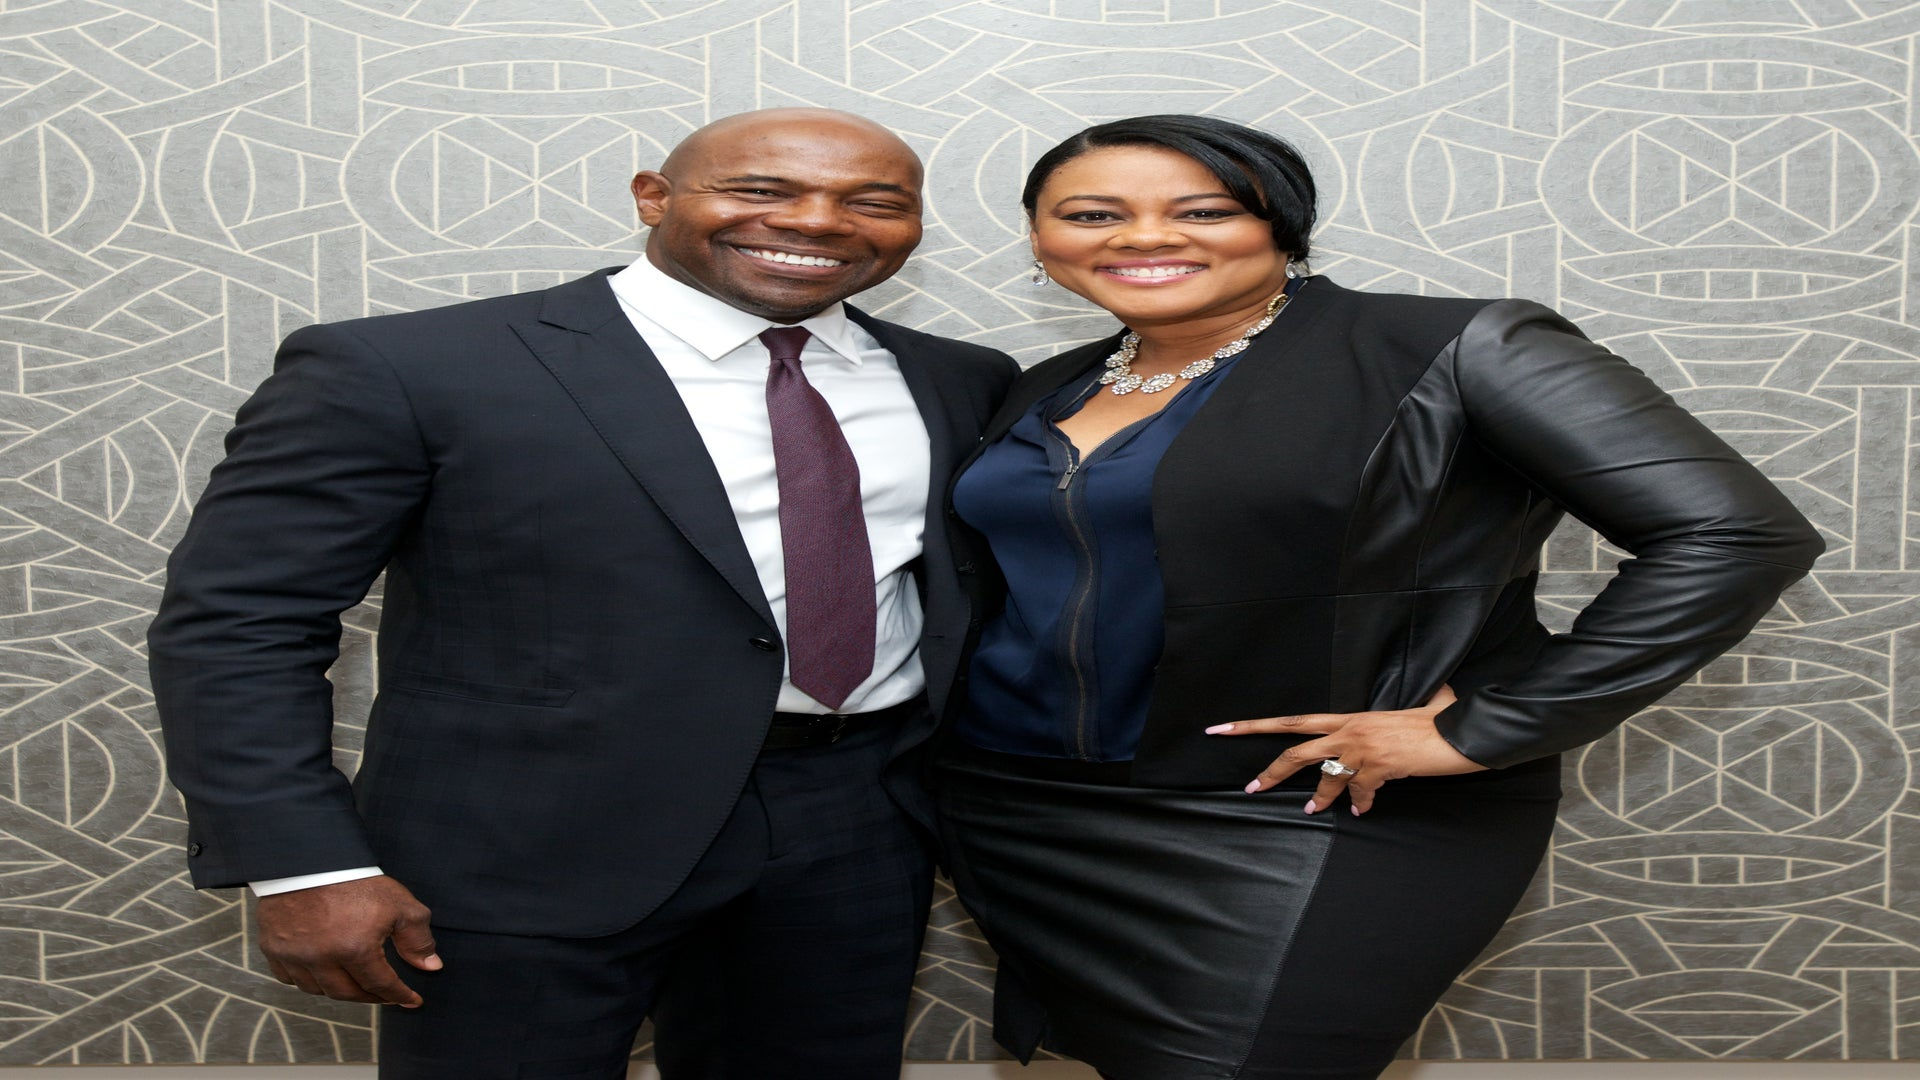 'Waiting To Exhale' Star Lela Rochon Celebrates 19 Years Of Marriage To Director Antoine Fuqua